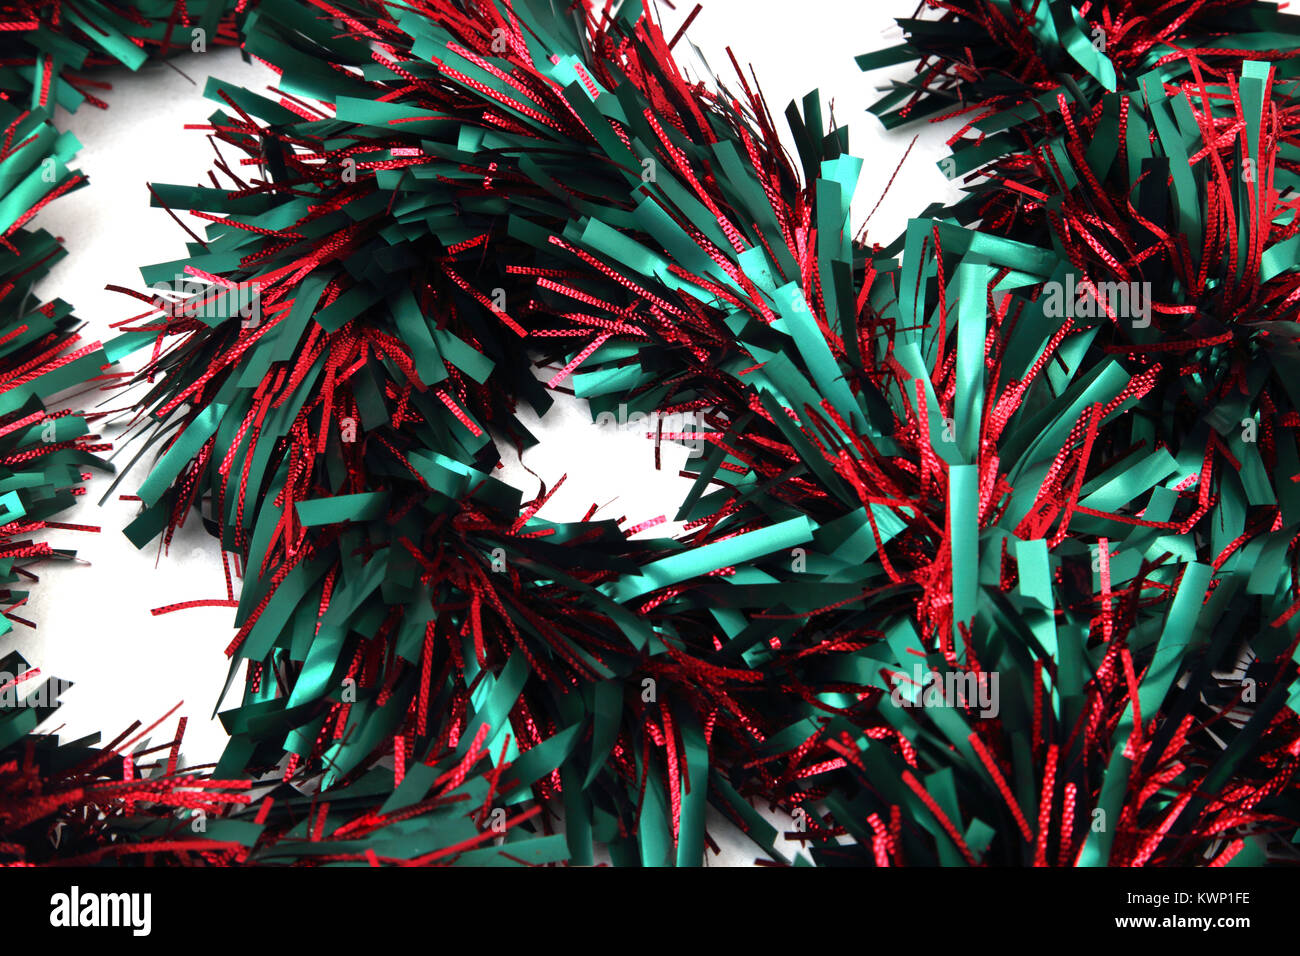 Christmas Decoration Red And Green Tinsel - Stock Image